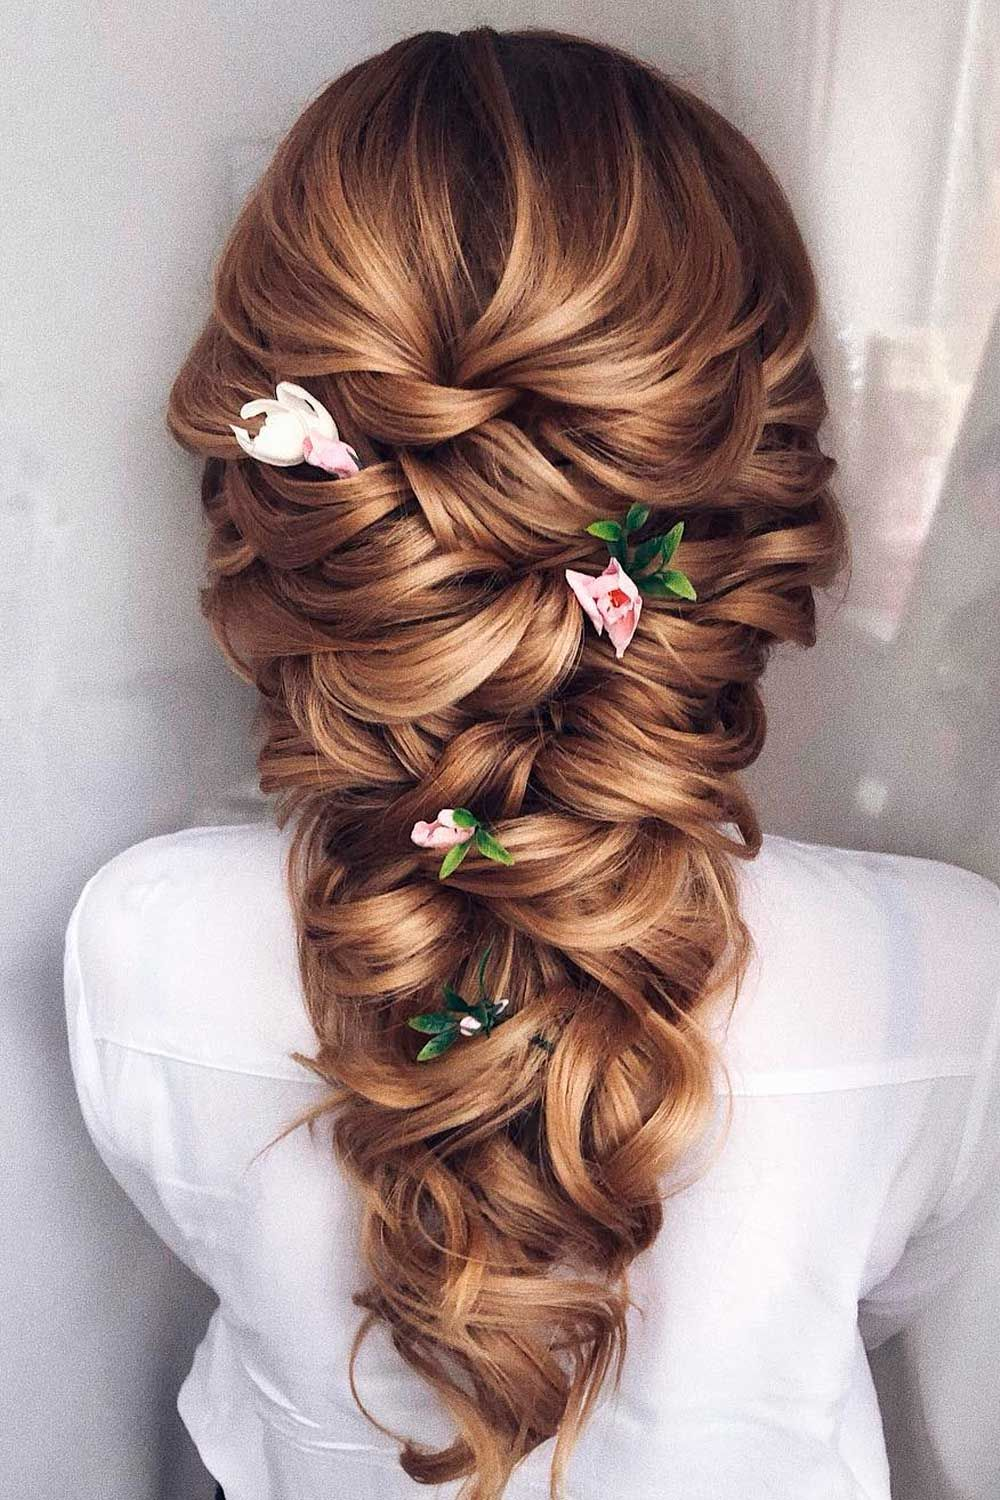 Hairstyles For Long Hair With Braids and Flowers